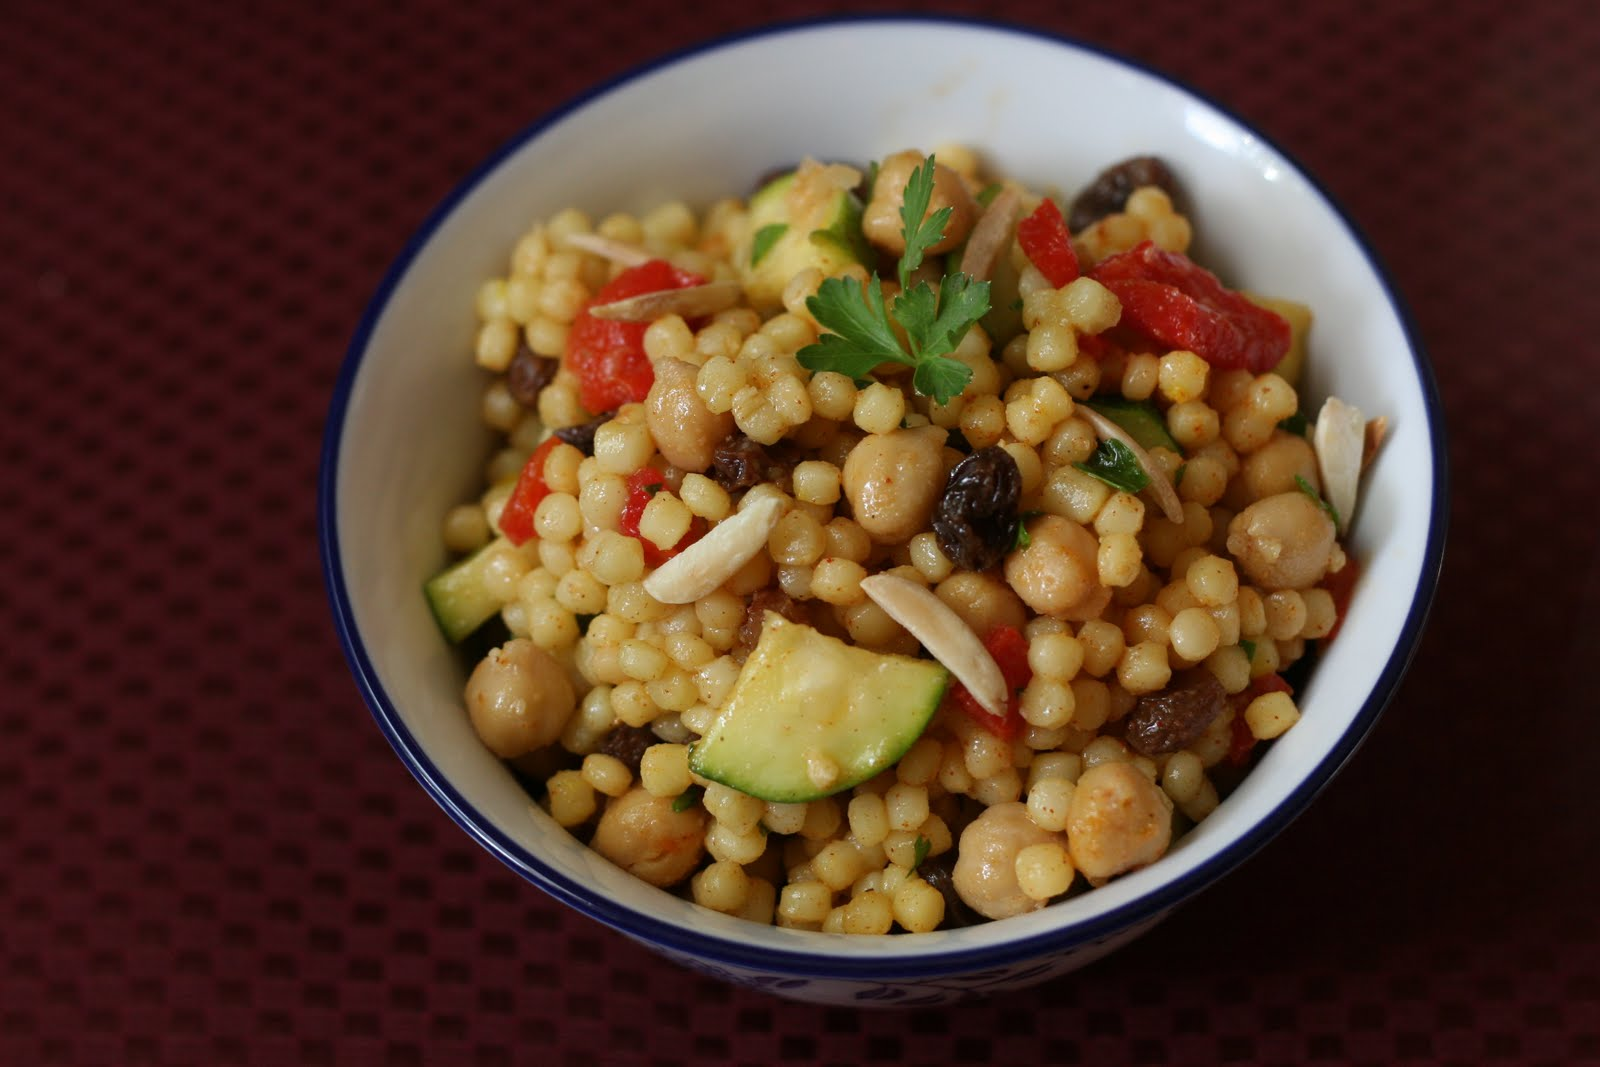 ... Ordinary Vegetarian: Moroccan Couscous Salad with Saffron and Cinnamon